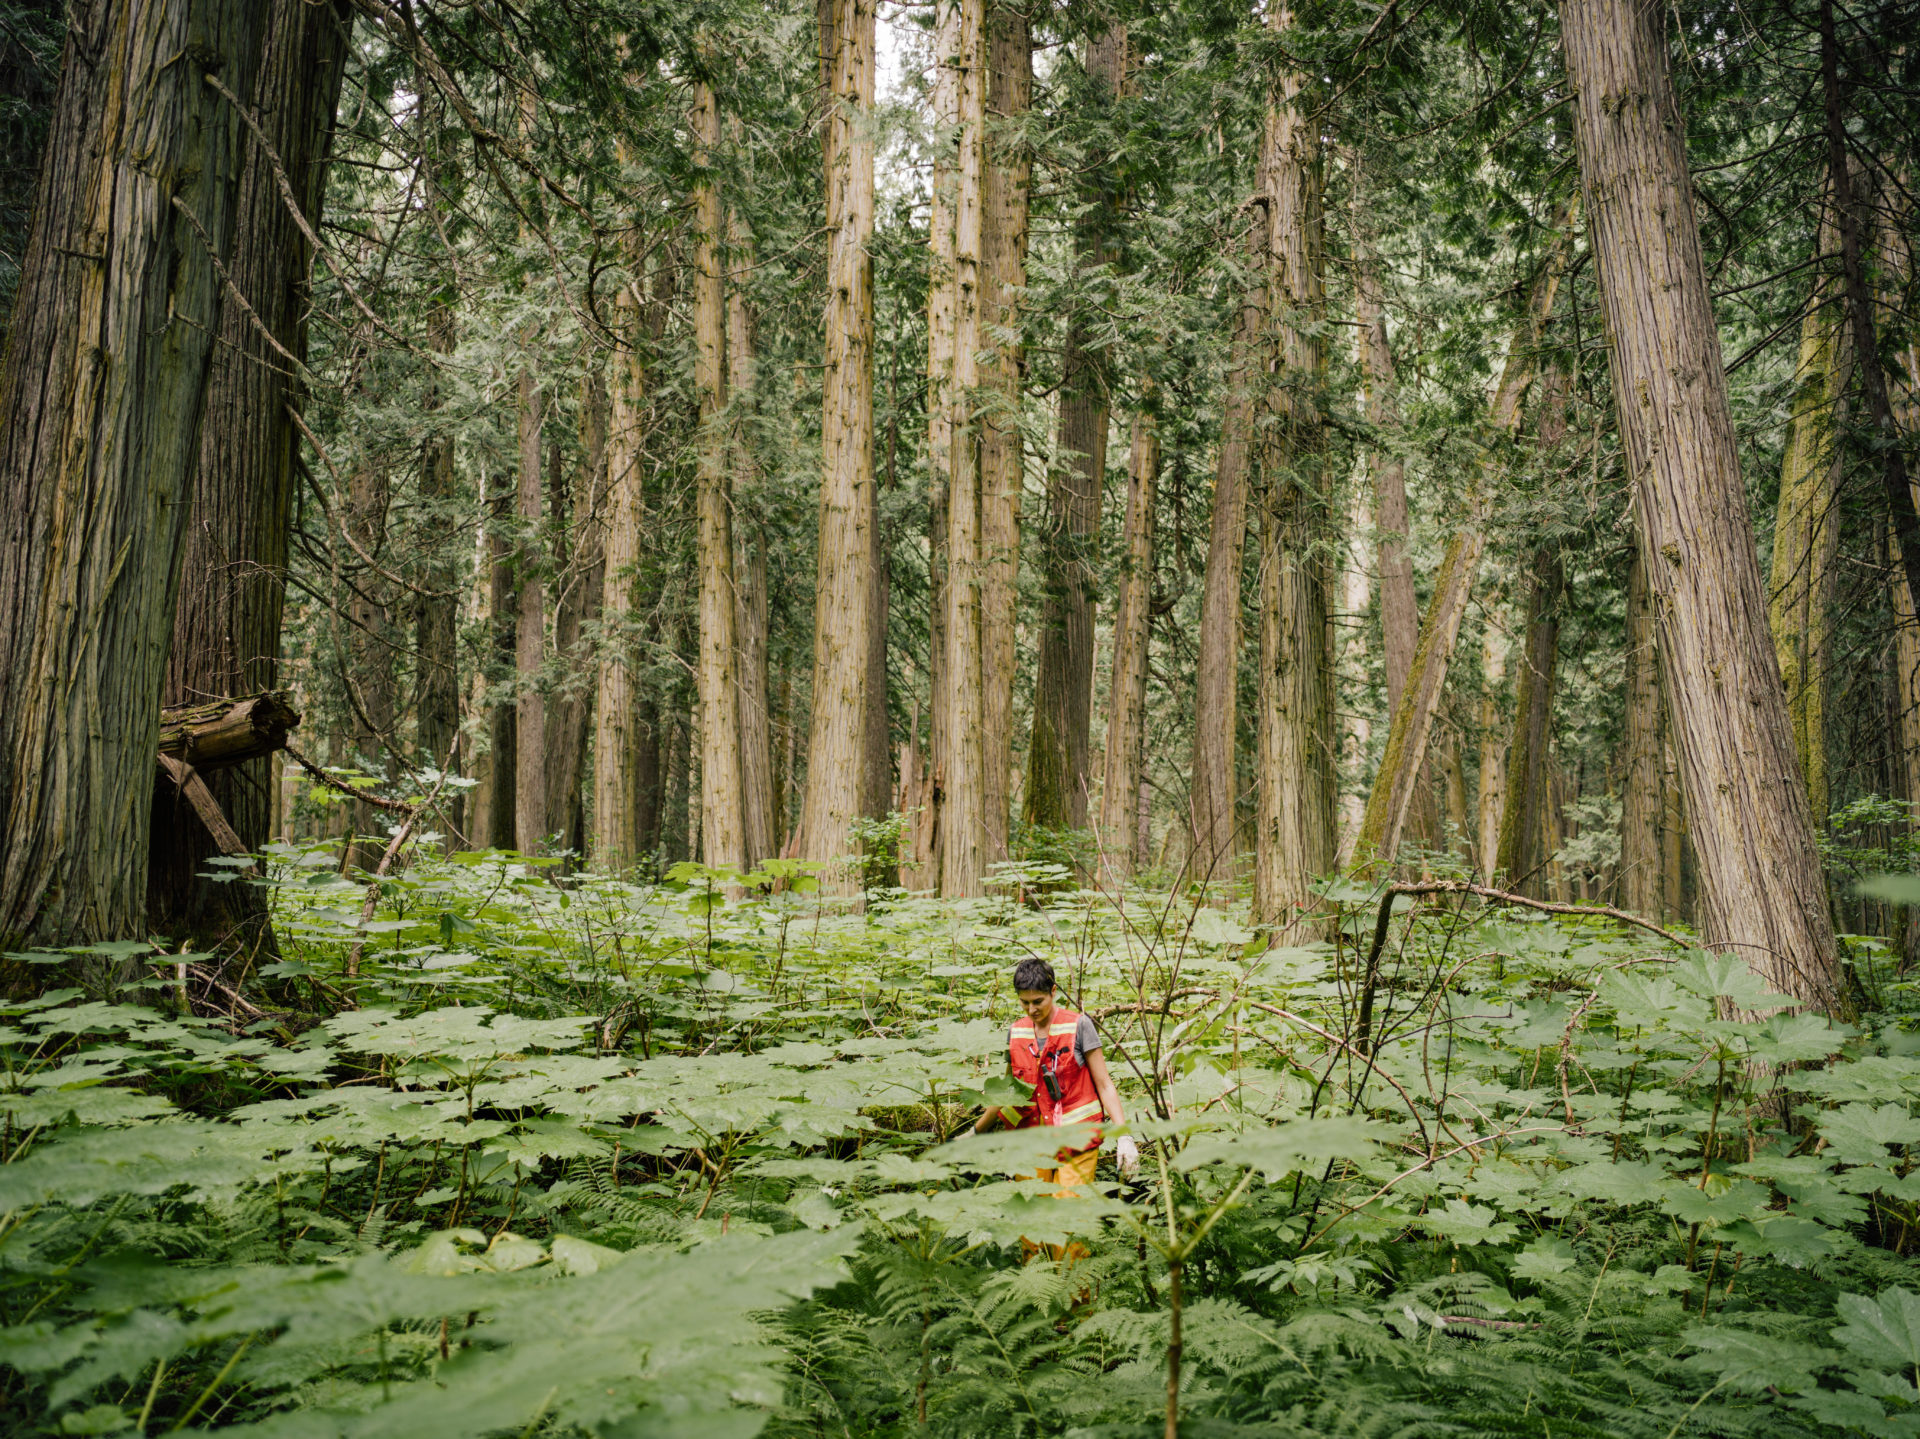 Canada's forgotten rainforest